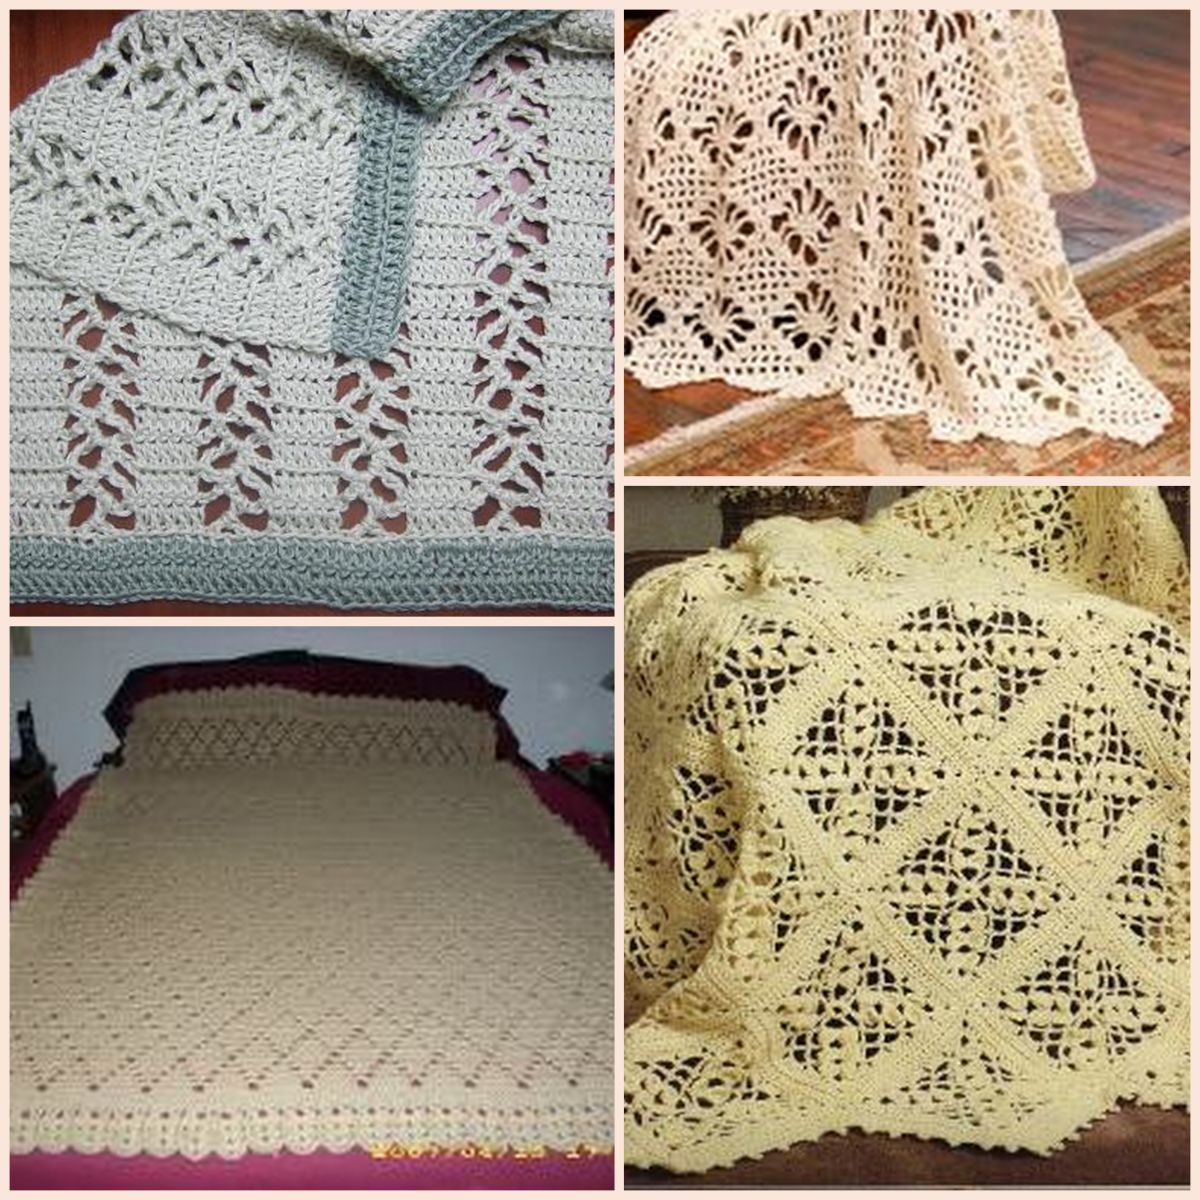 Www All Free Crochet Com : 20 Lace Crochet Designs for Afghans AllFreeCrochetAfghanPatterns.com